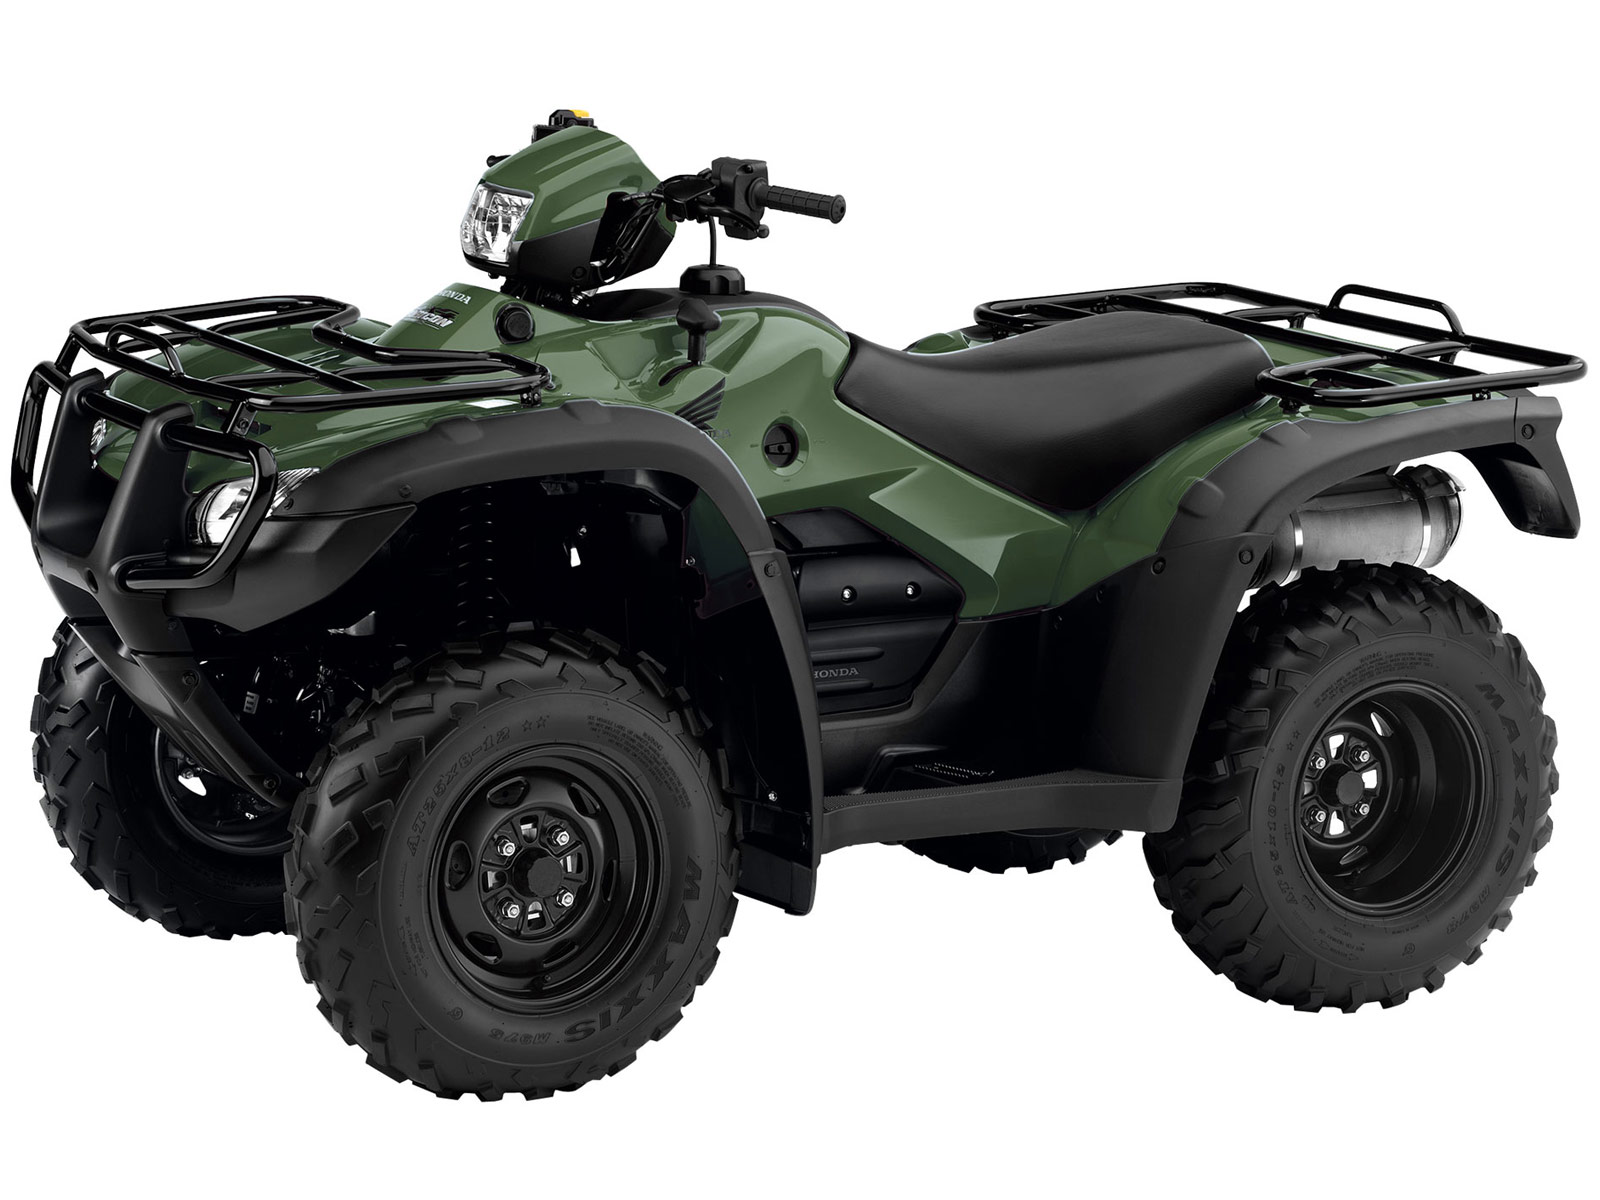 2013 honda fourtrax foreman rubicon trx500fa atv pictures. Black Bedroom Furniture Sets. Home Design Ideas